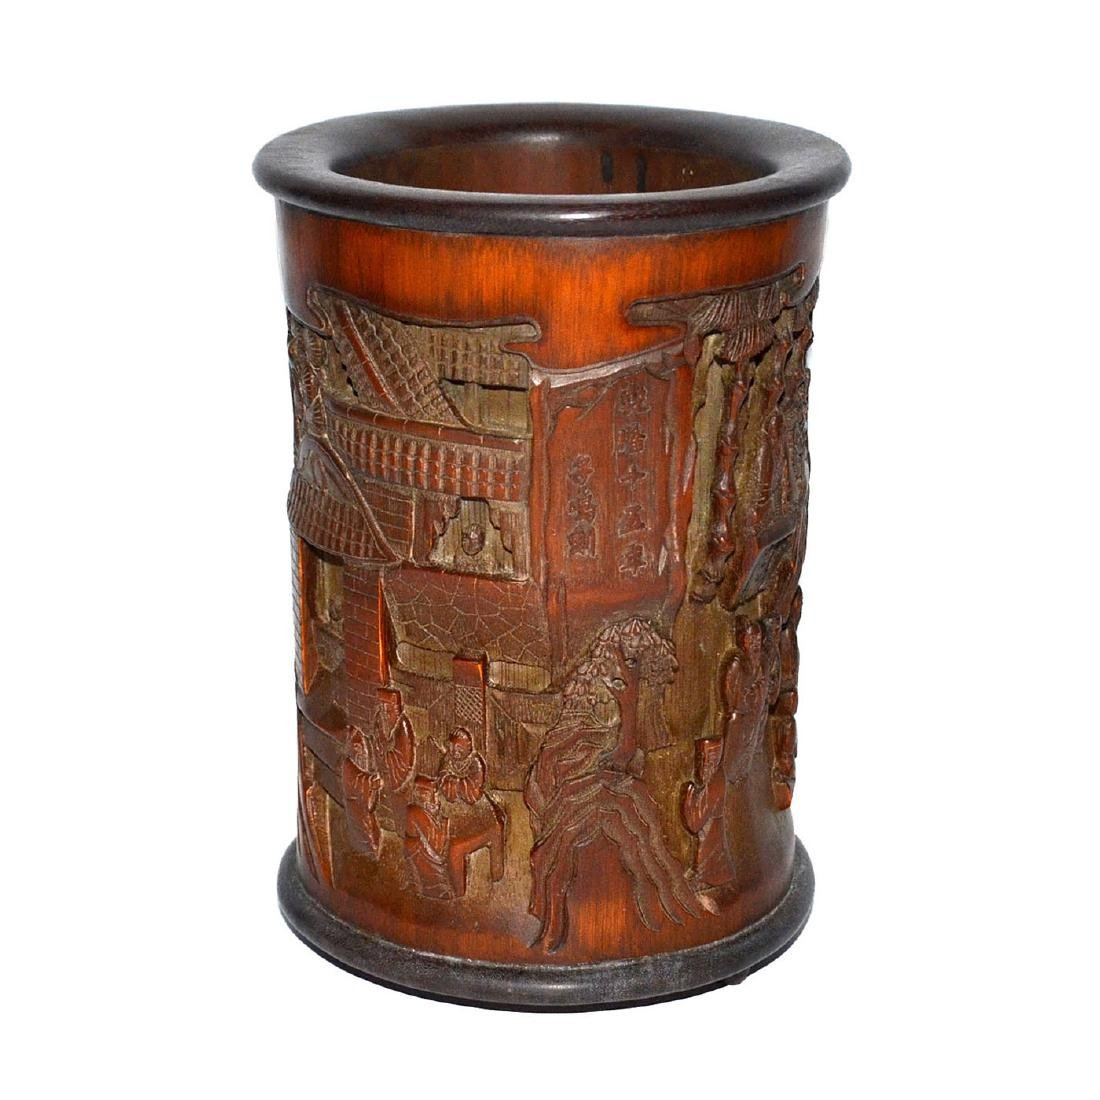 A Deeply Carved Bamboo Brush Pot with an Openwork Scene - 4